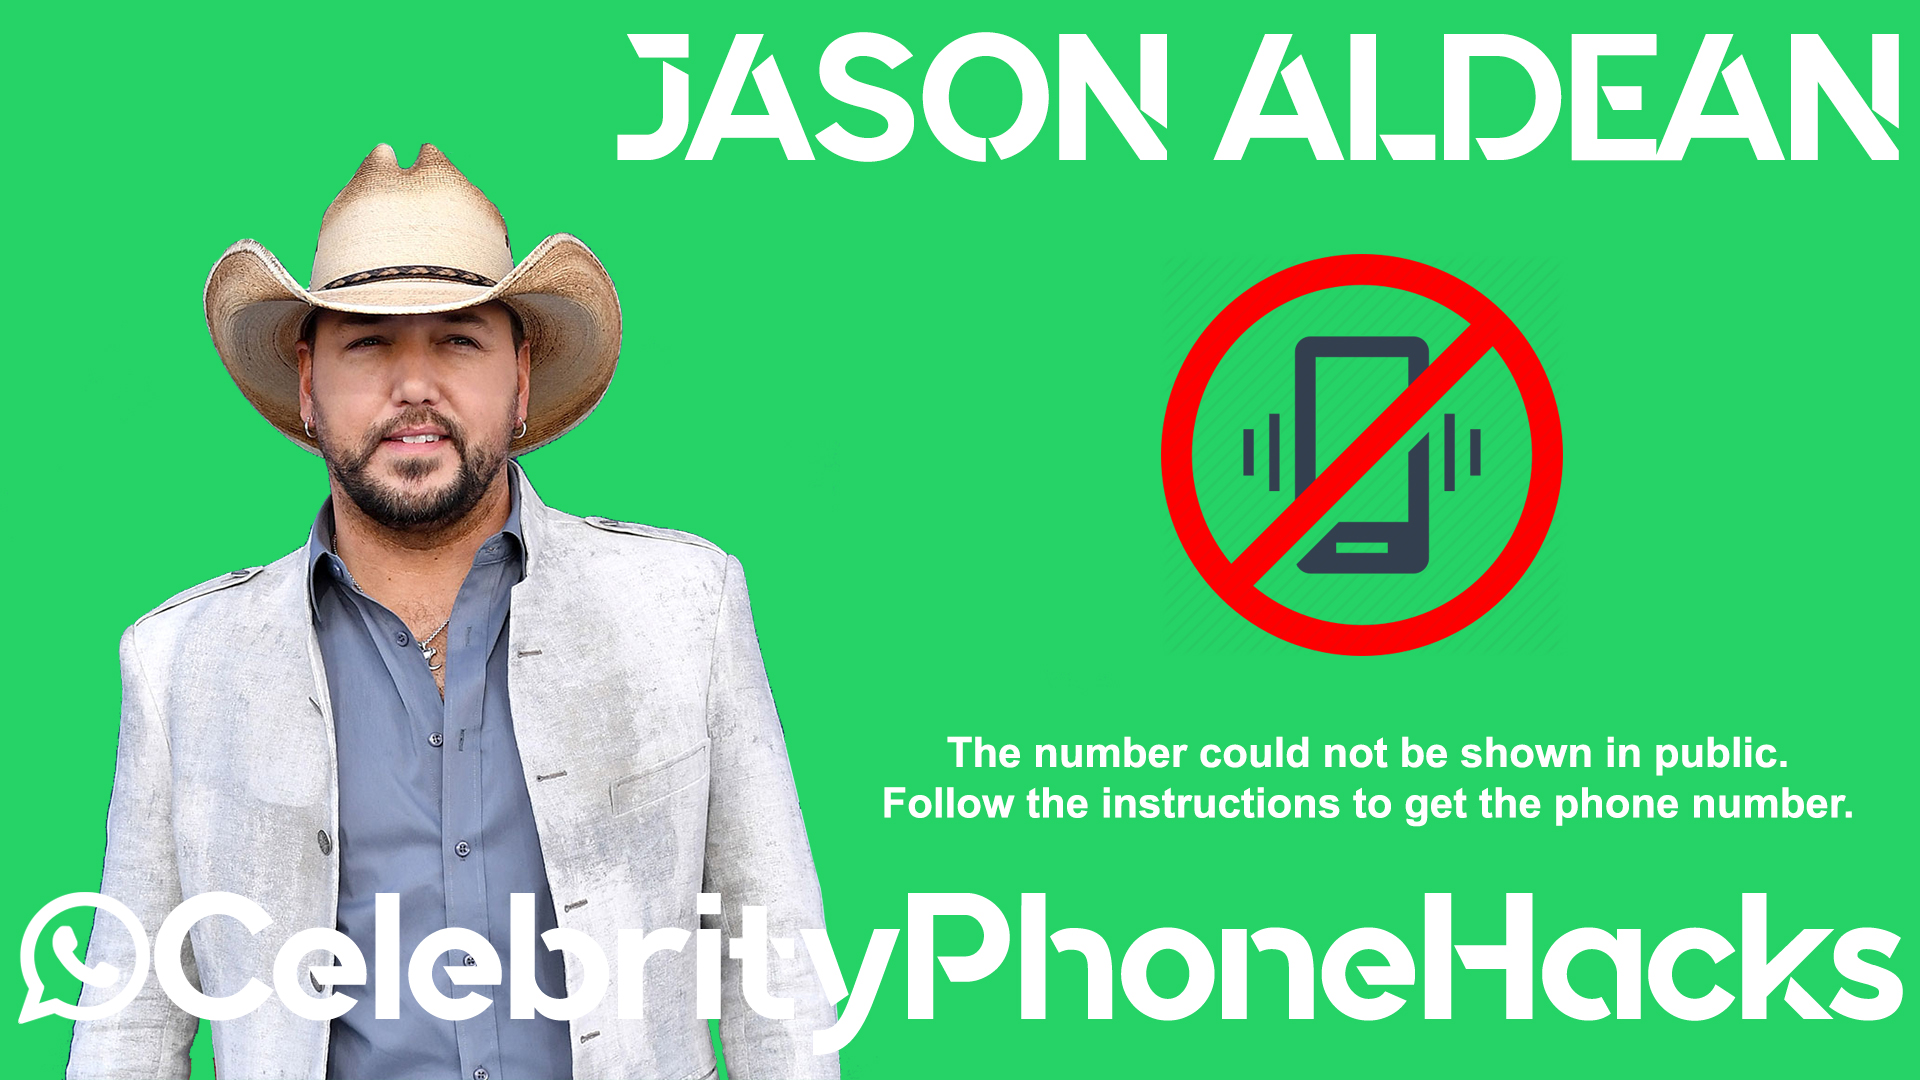 Jason Aldean real phone number 2019 whatsapp hacked leaked